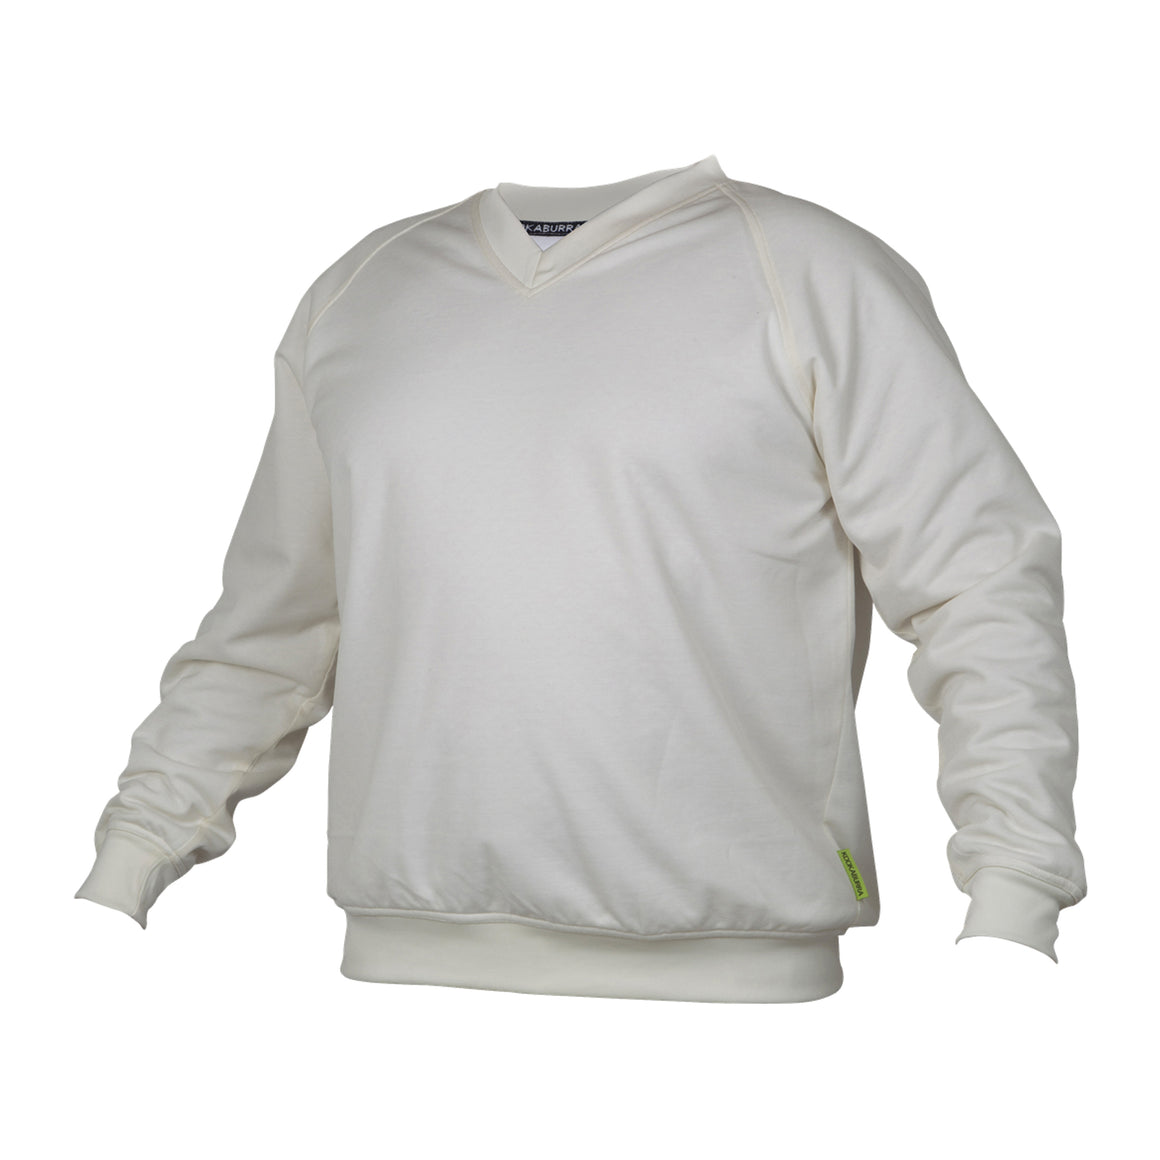 Predator Cricket Sweater for Kids in Ivory